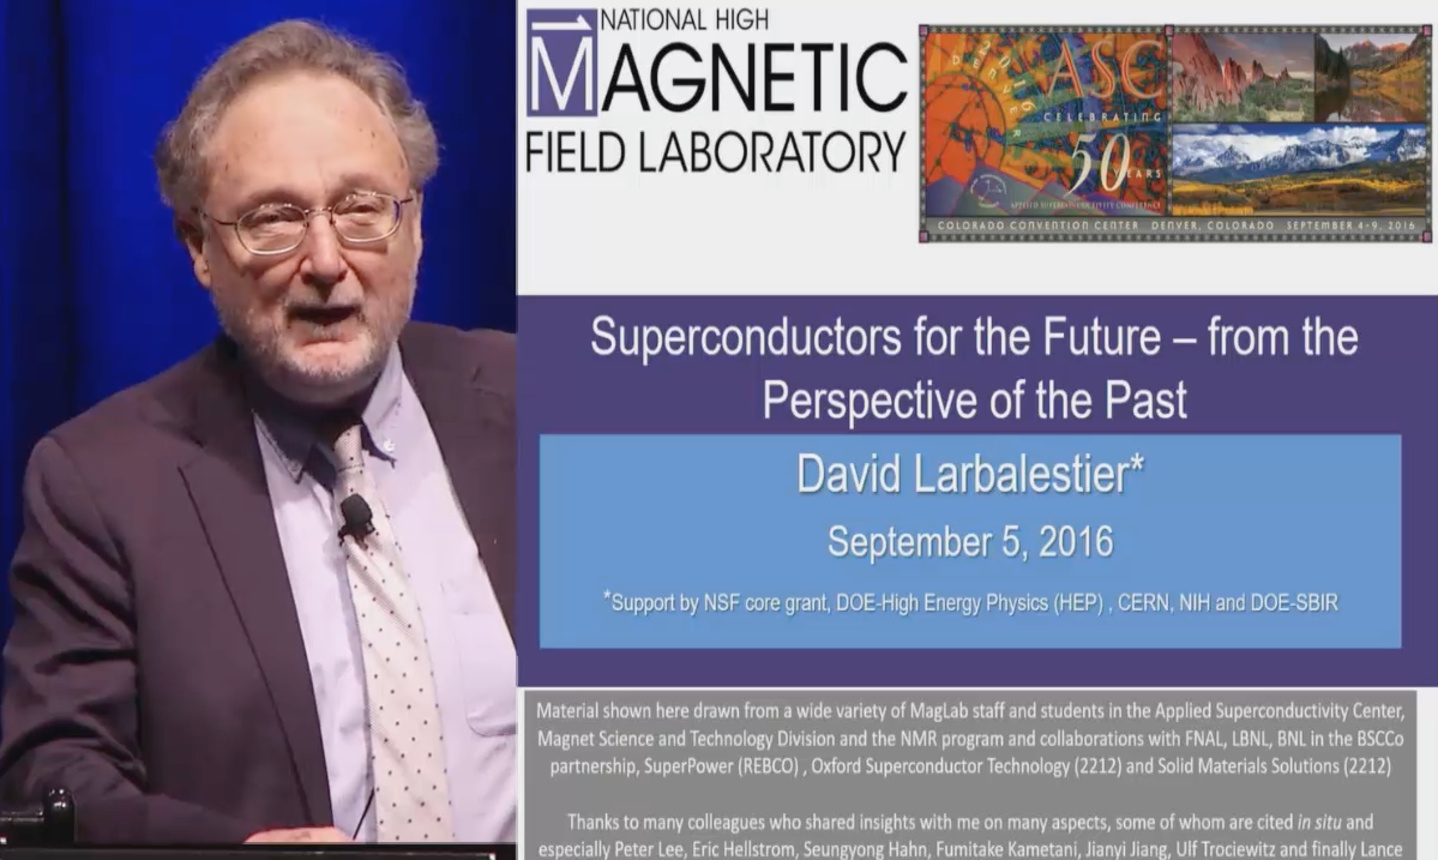 Superconductors for the Future  from the Perspective of the Past